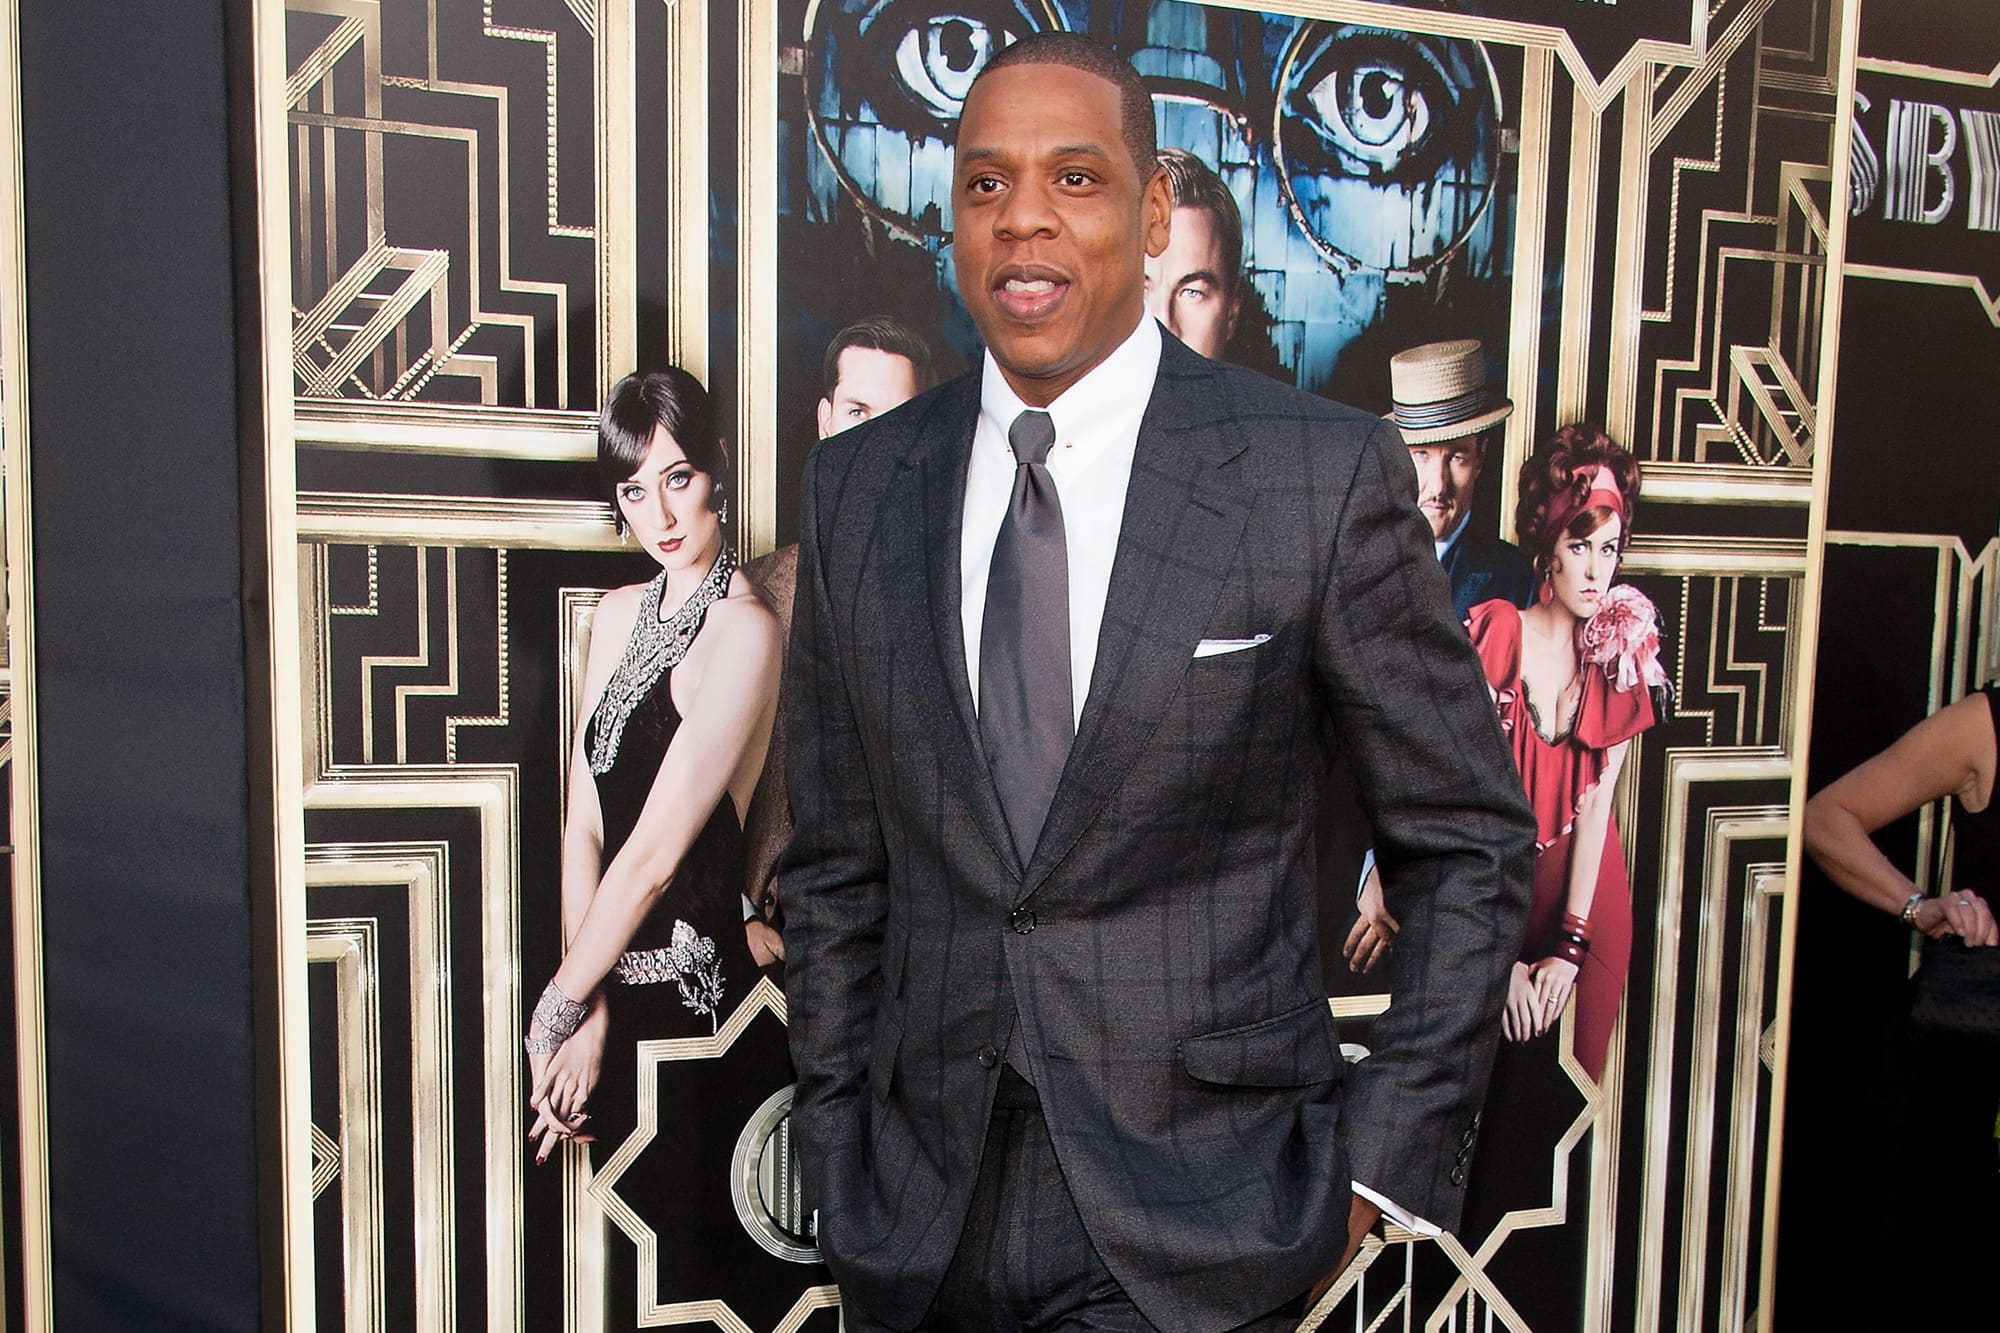 5 strategies that helped Jay-Z build an $800 million career